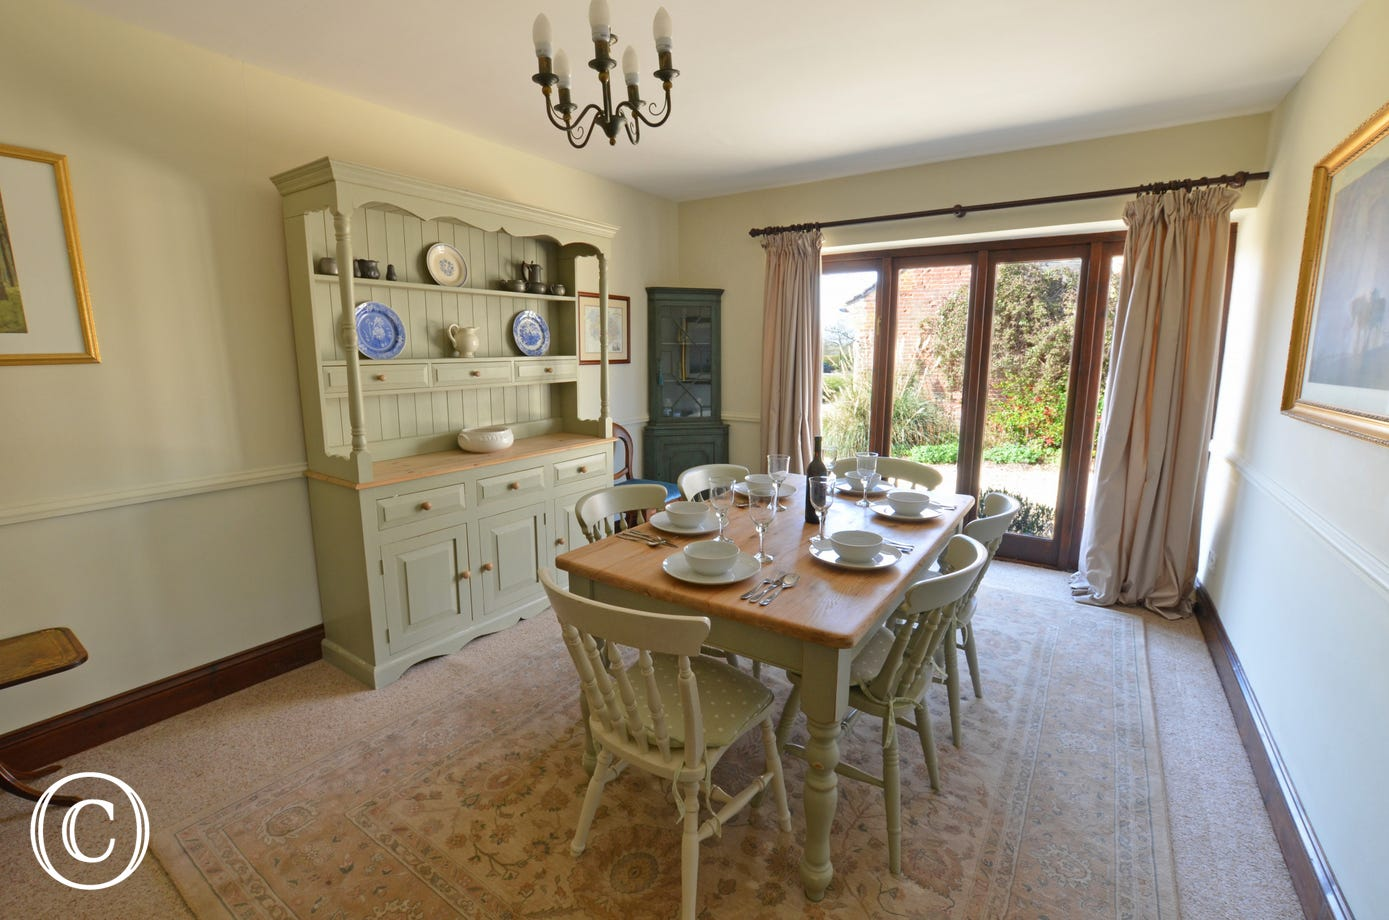 The spacious dining room with a large dresser, table and six chairs. Ideal for a traditional family meal